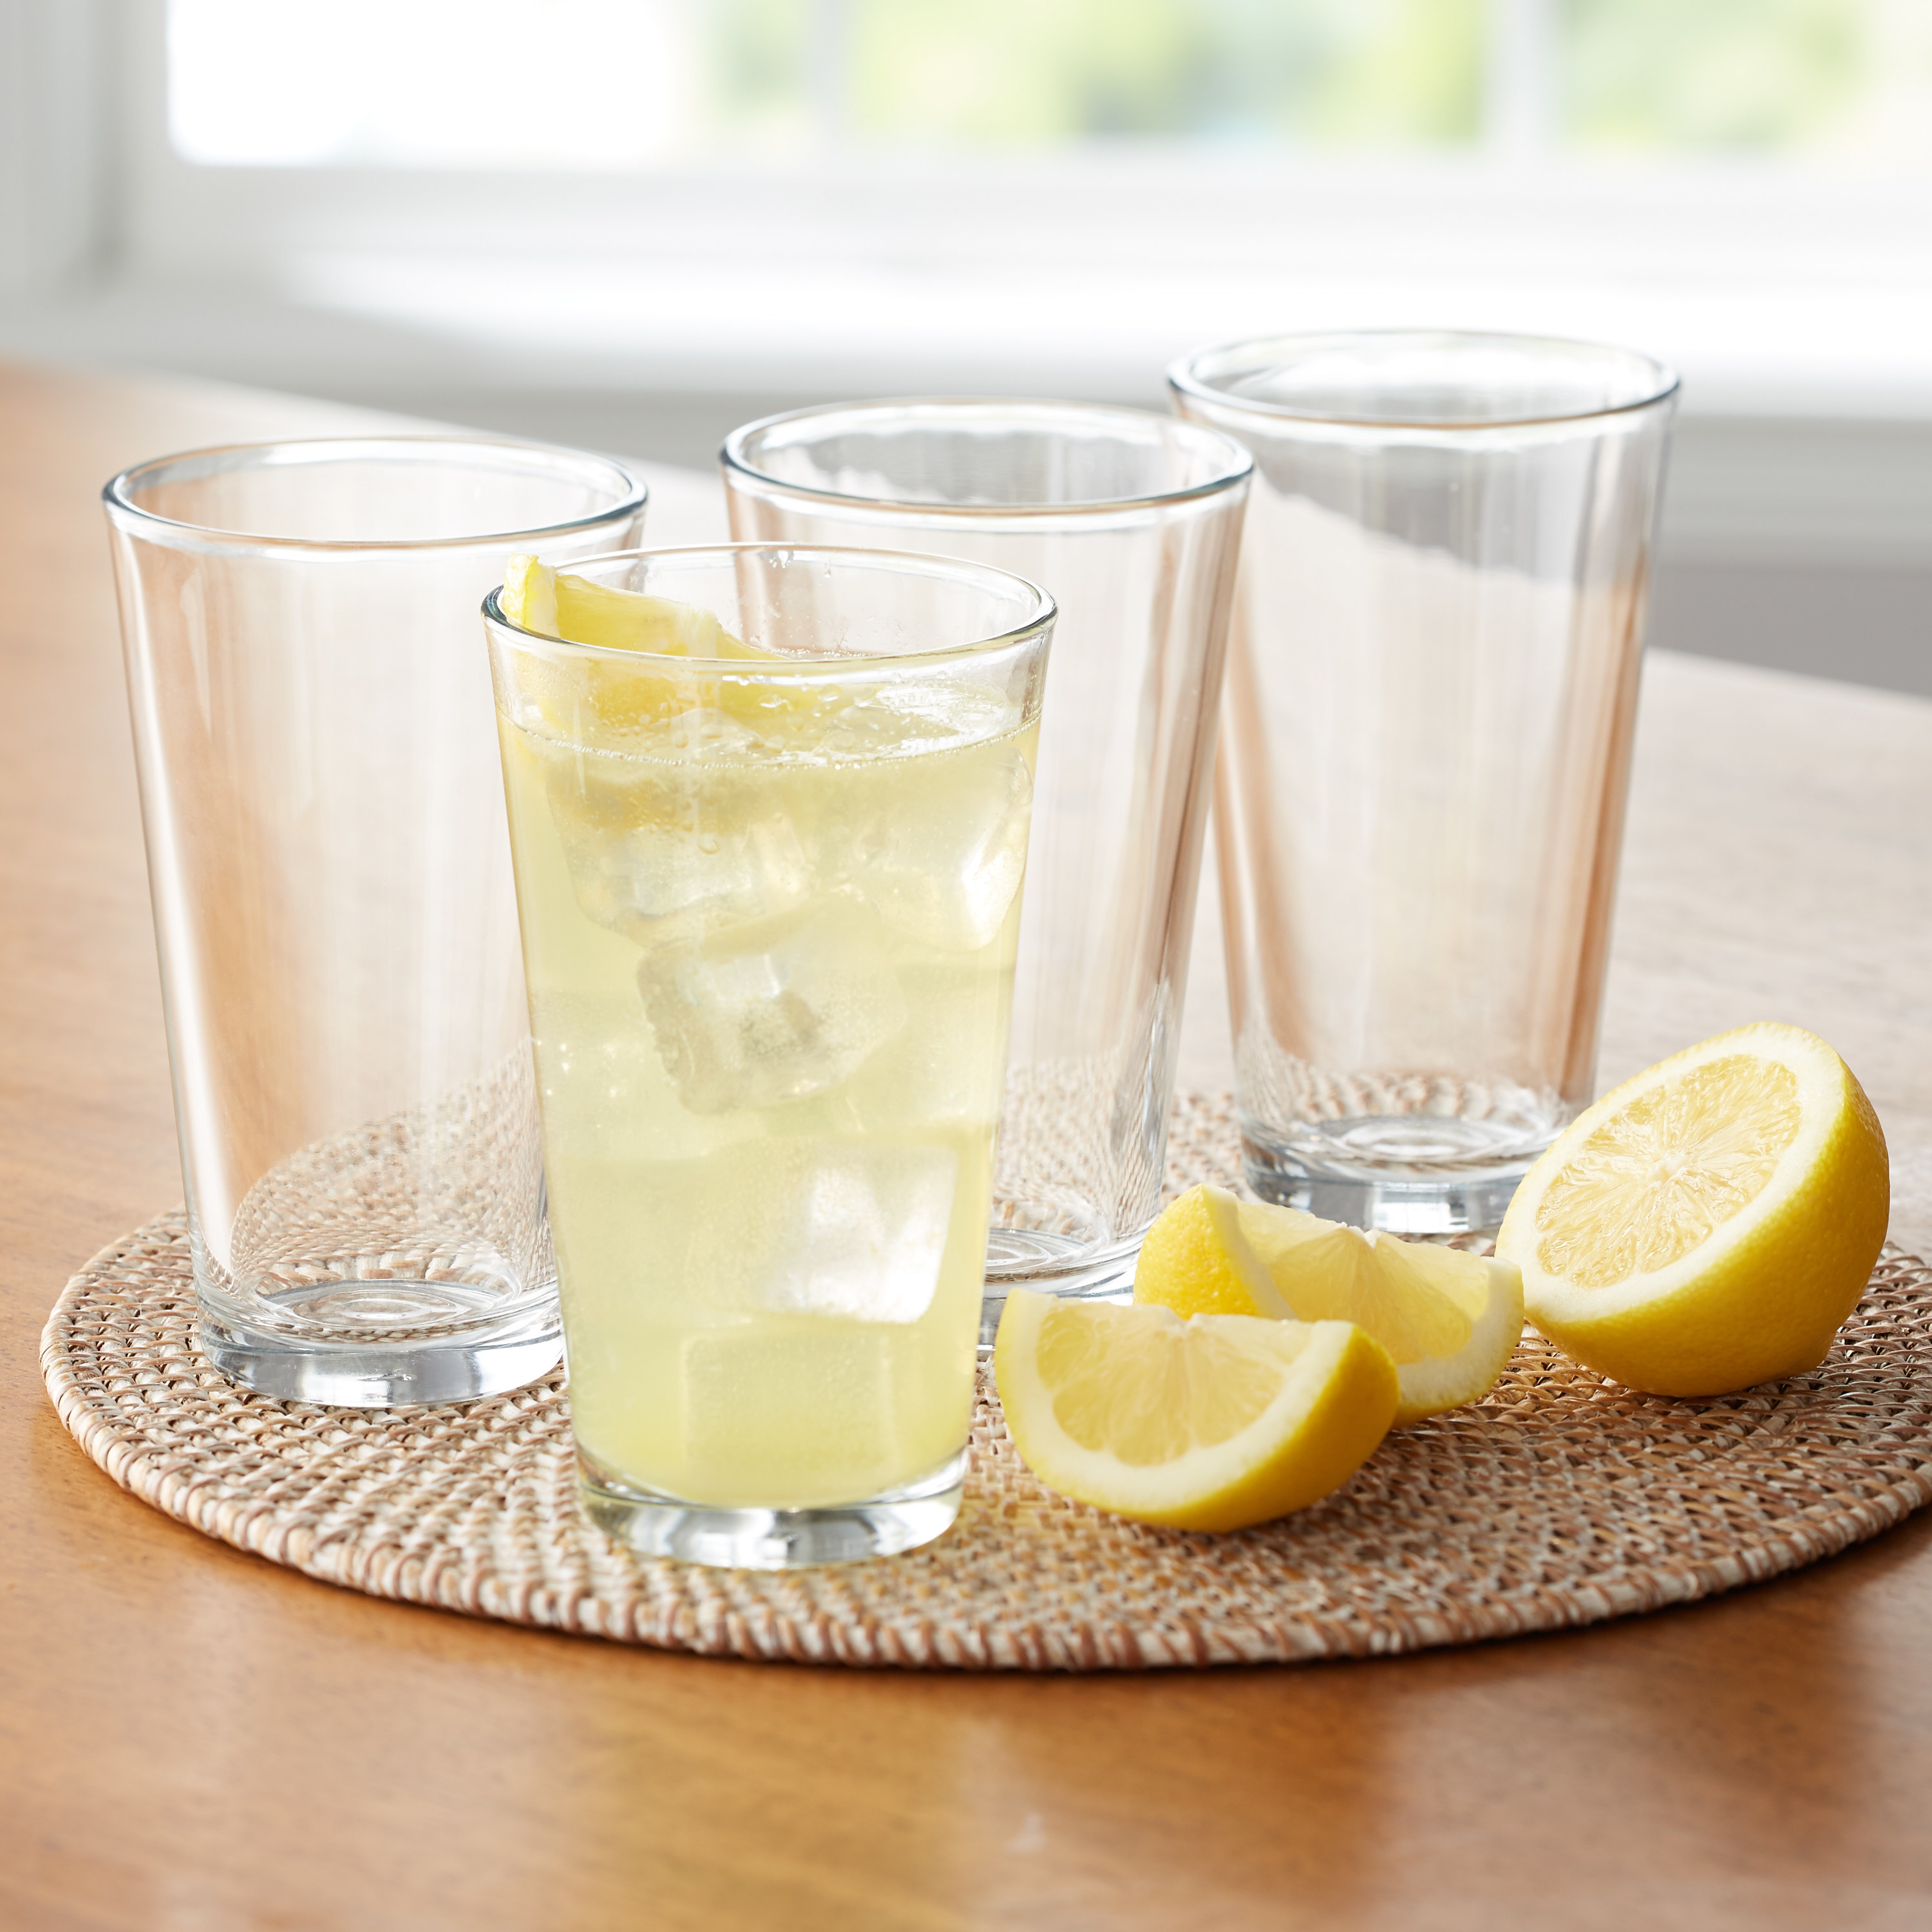 Four glasses on a table, one filled with lemonade, sitting next to a sliced lemon